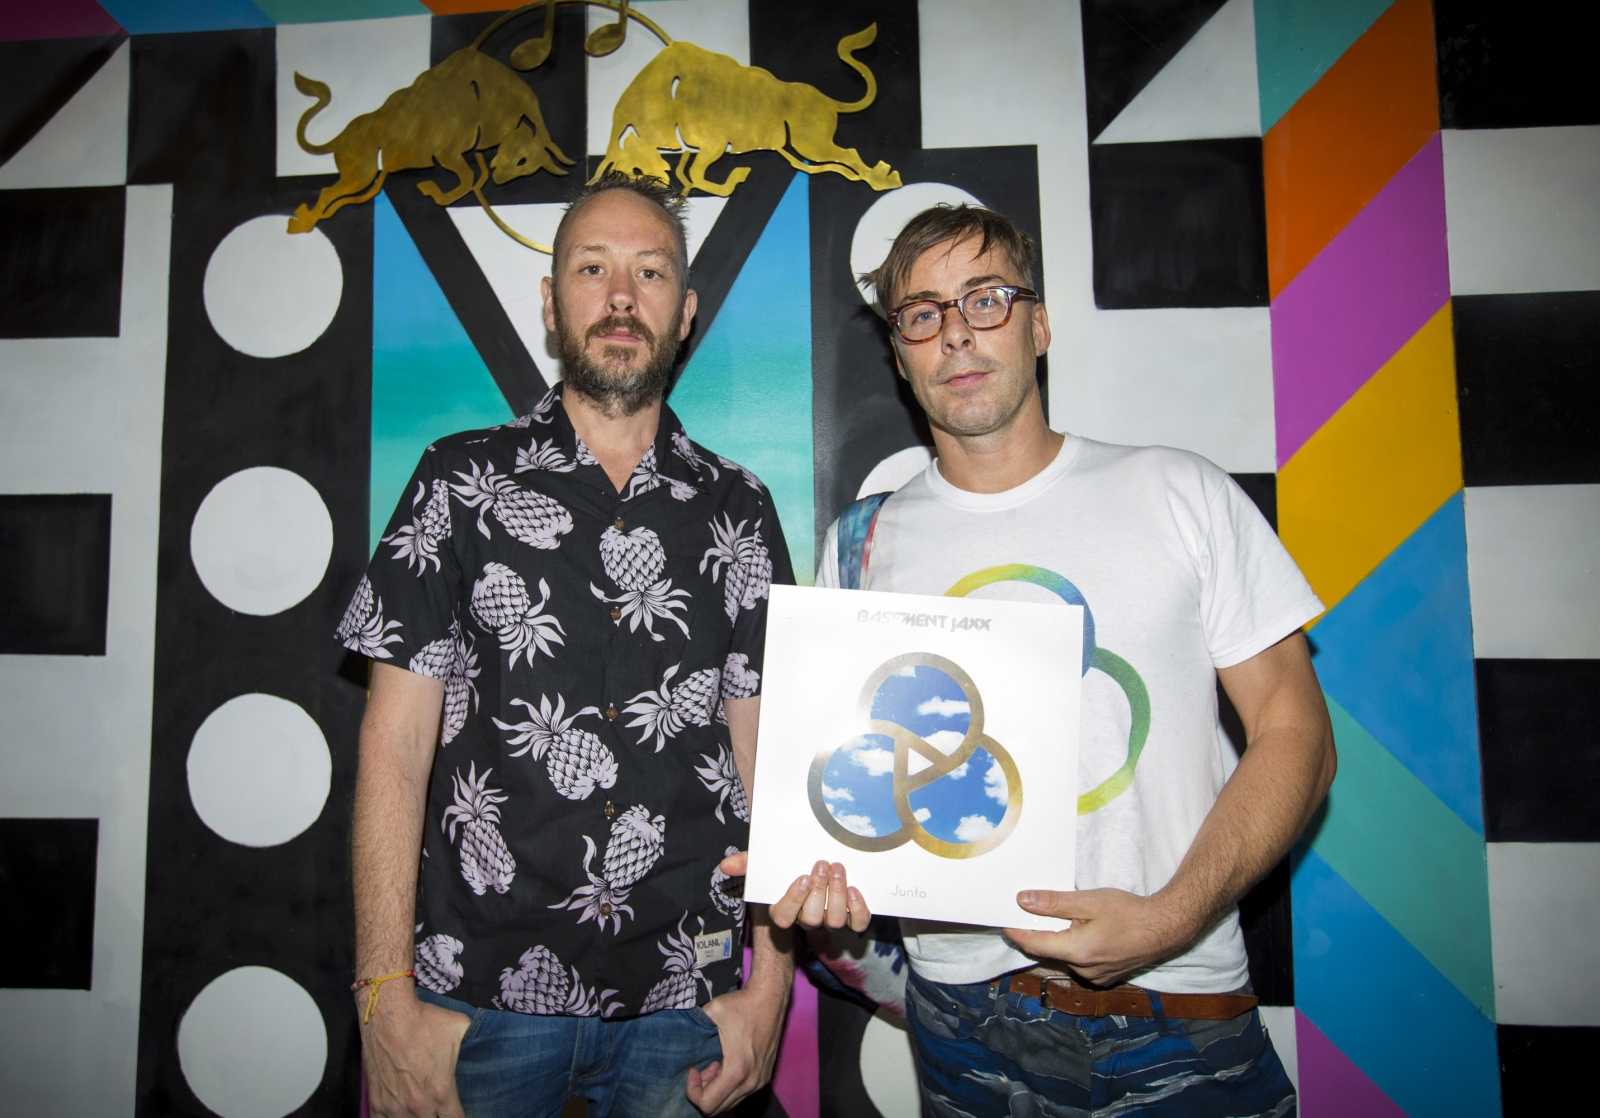 Simon Ratcliffe and Felix Buxton of Basement Jaxx backstage at the Red Bull Music Academy Sound System at Notting Hill Carnival